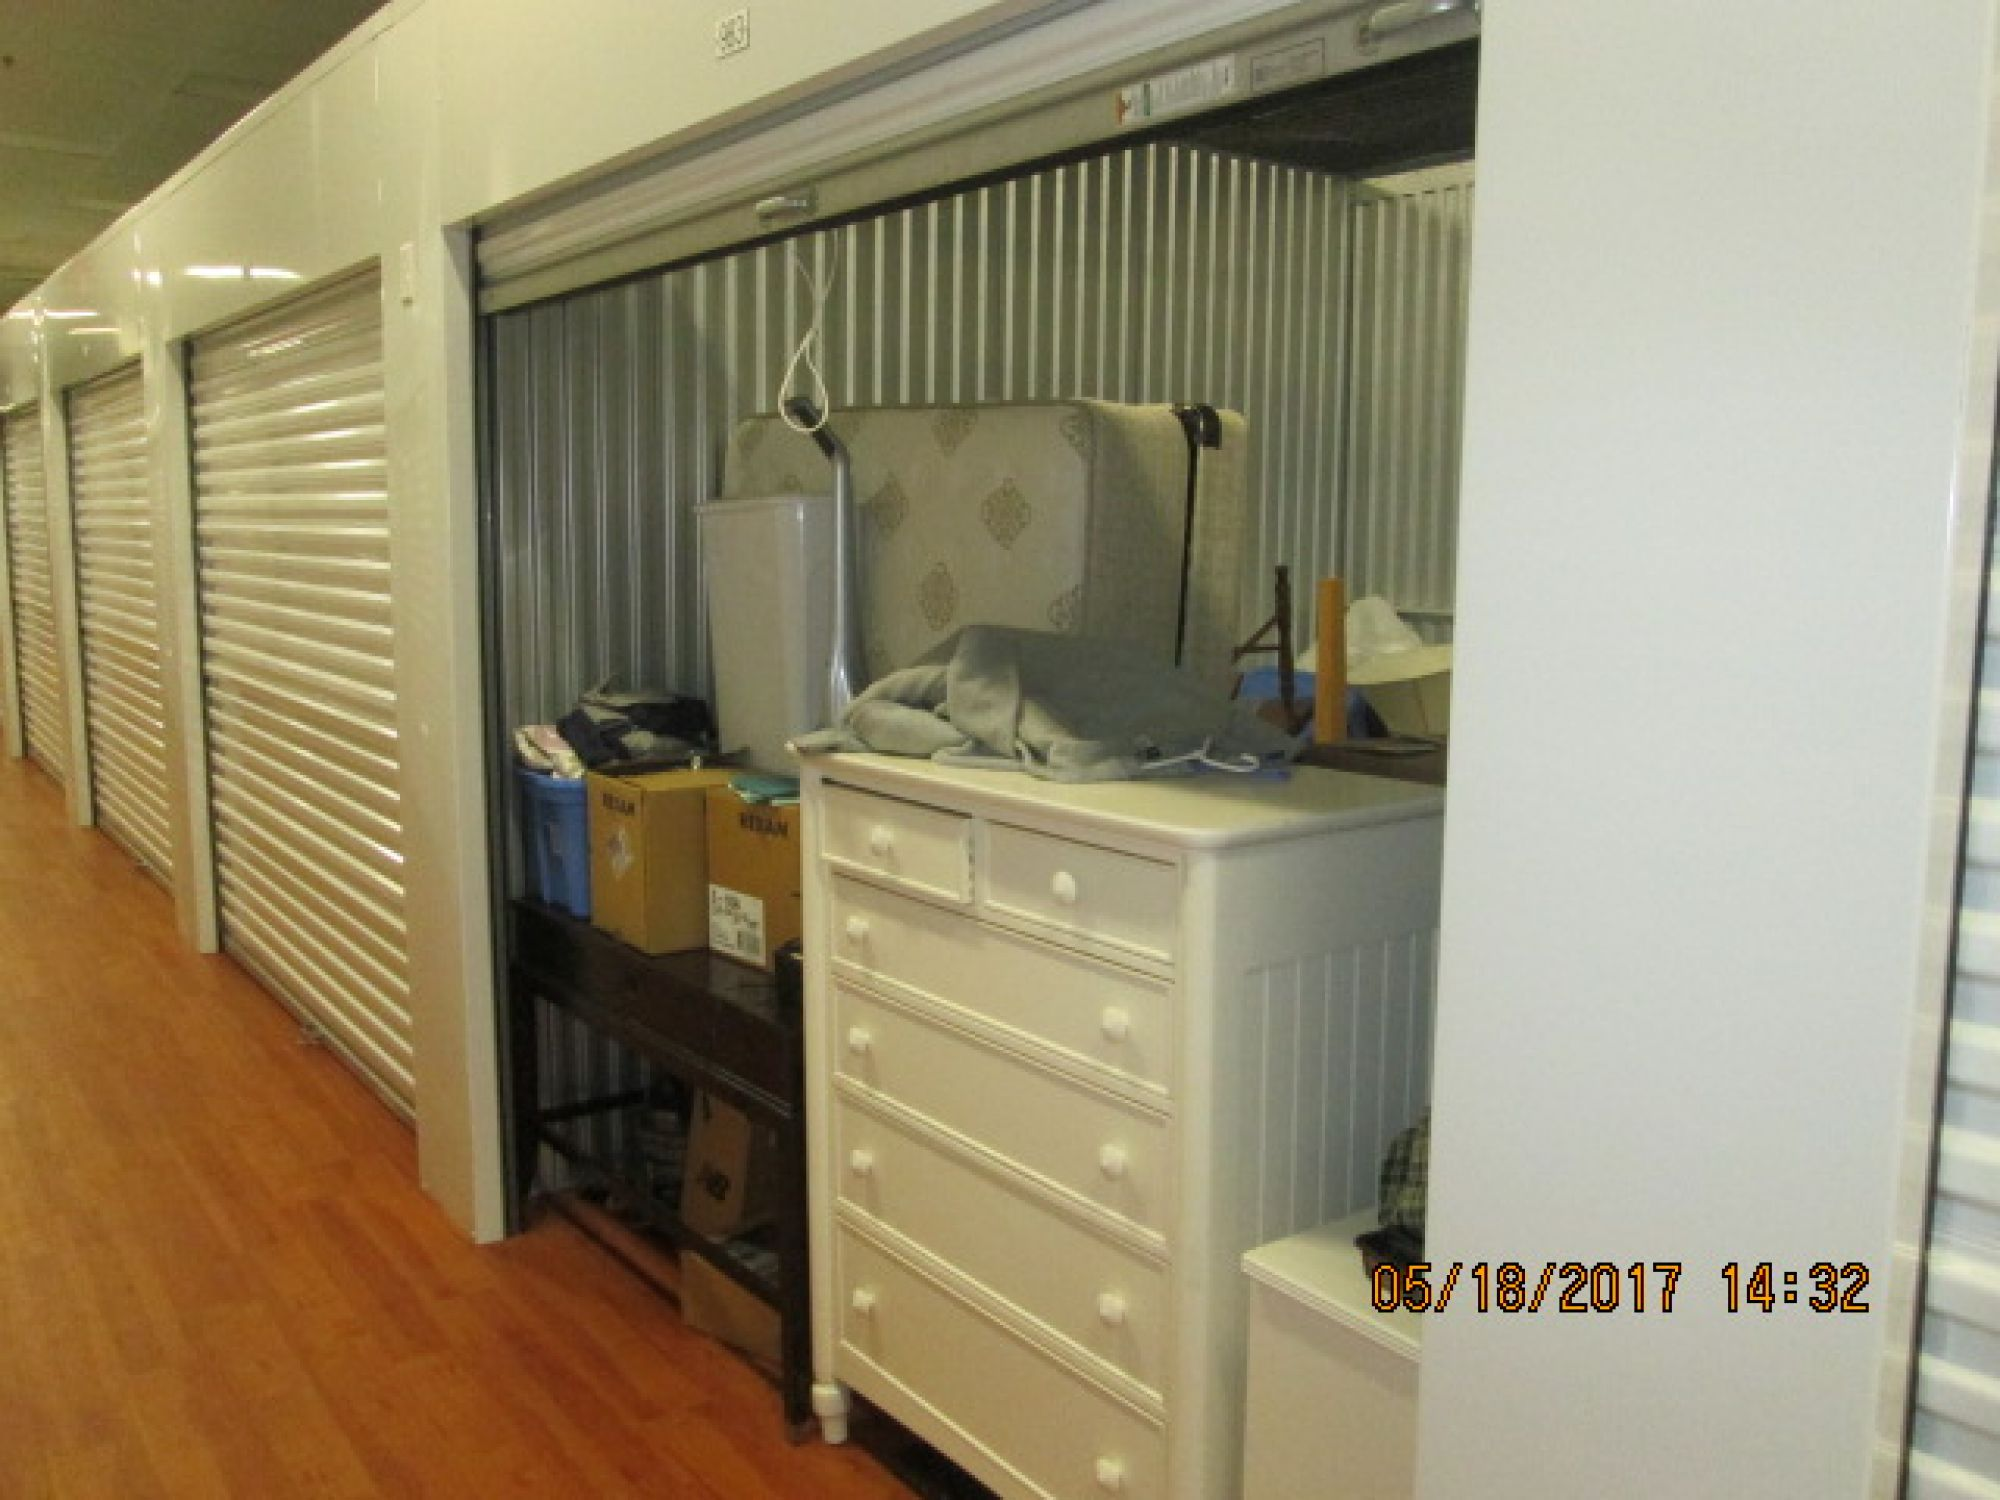 storage unit auction 423615 rochester ny. Black Bedroom Furniture Sets. Home Design Ideas